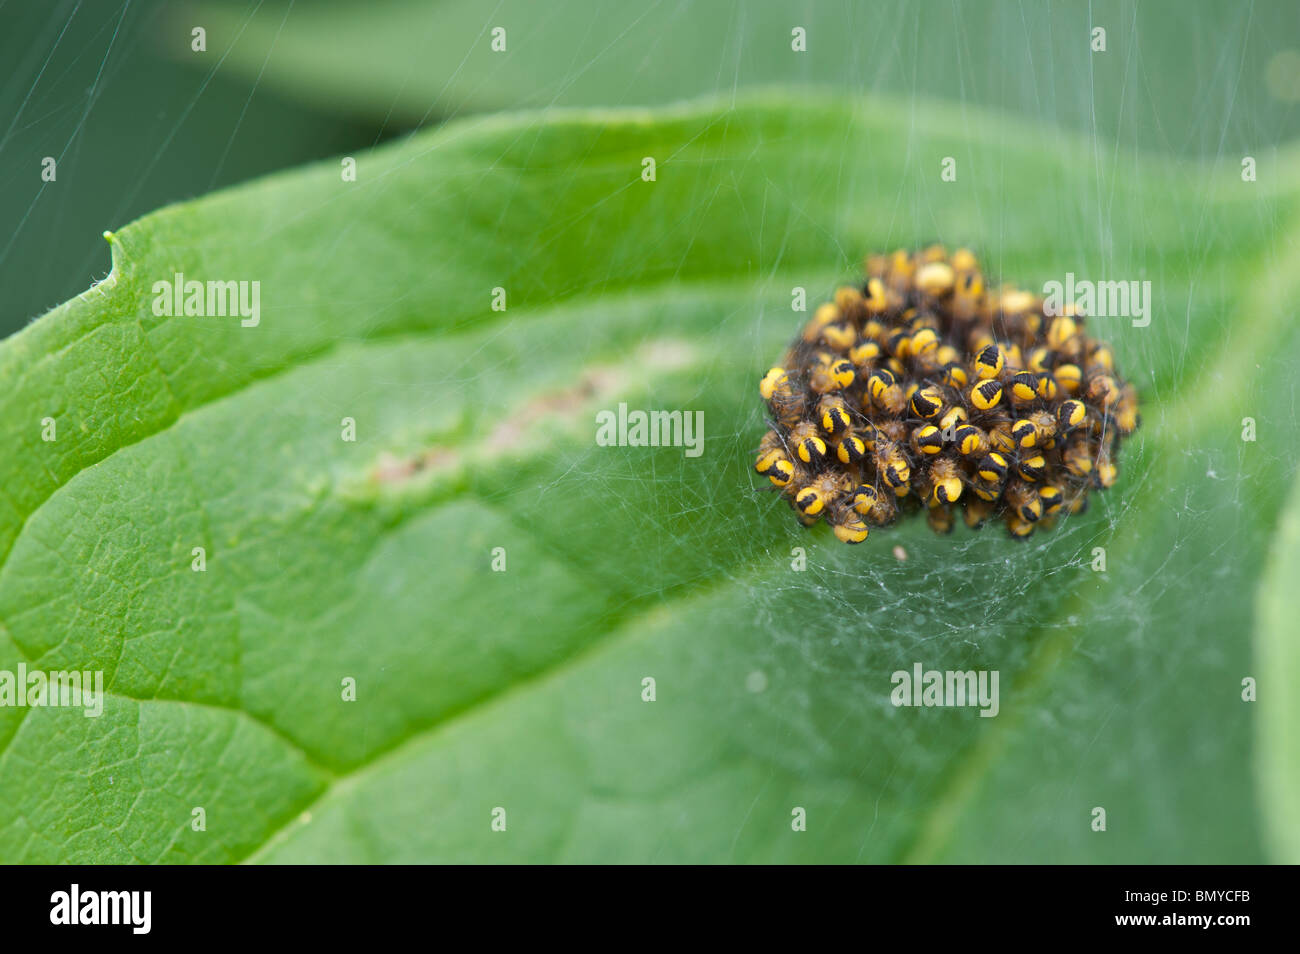 Araneus diadematus. Young cross orbweaver spiders in a spiders web nest - Stock Image